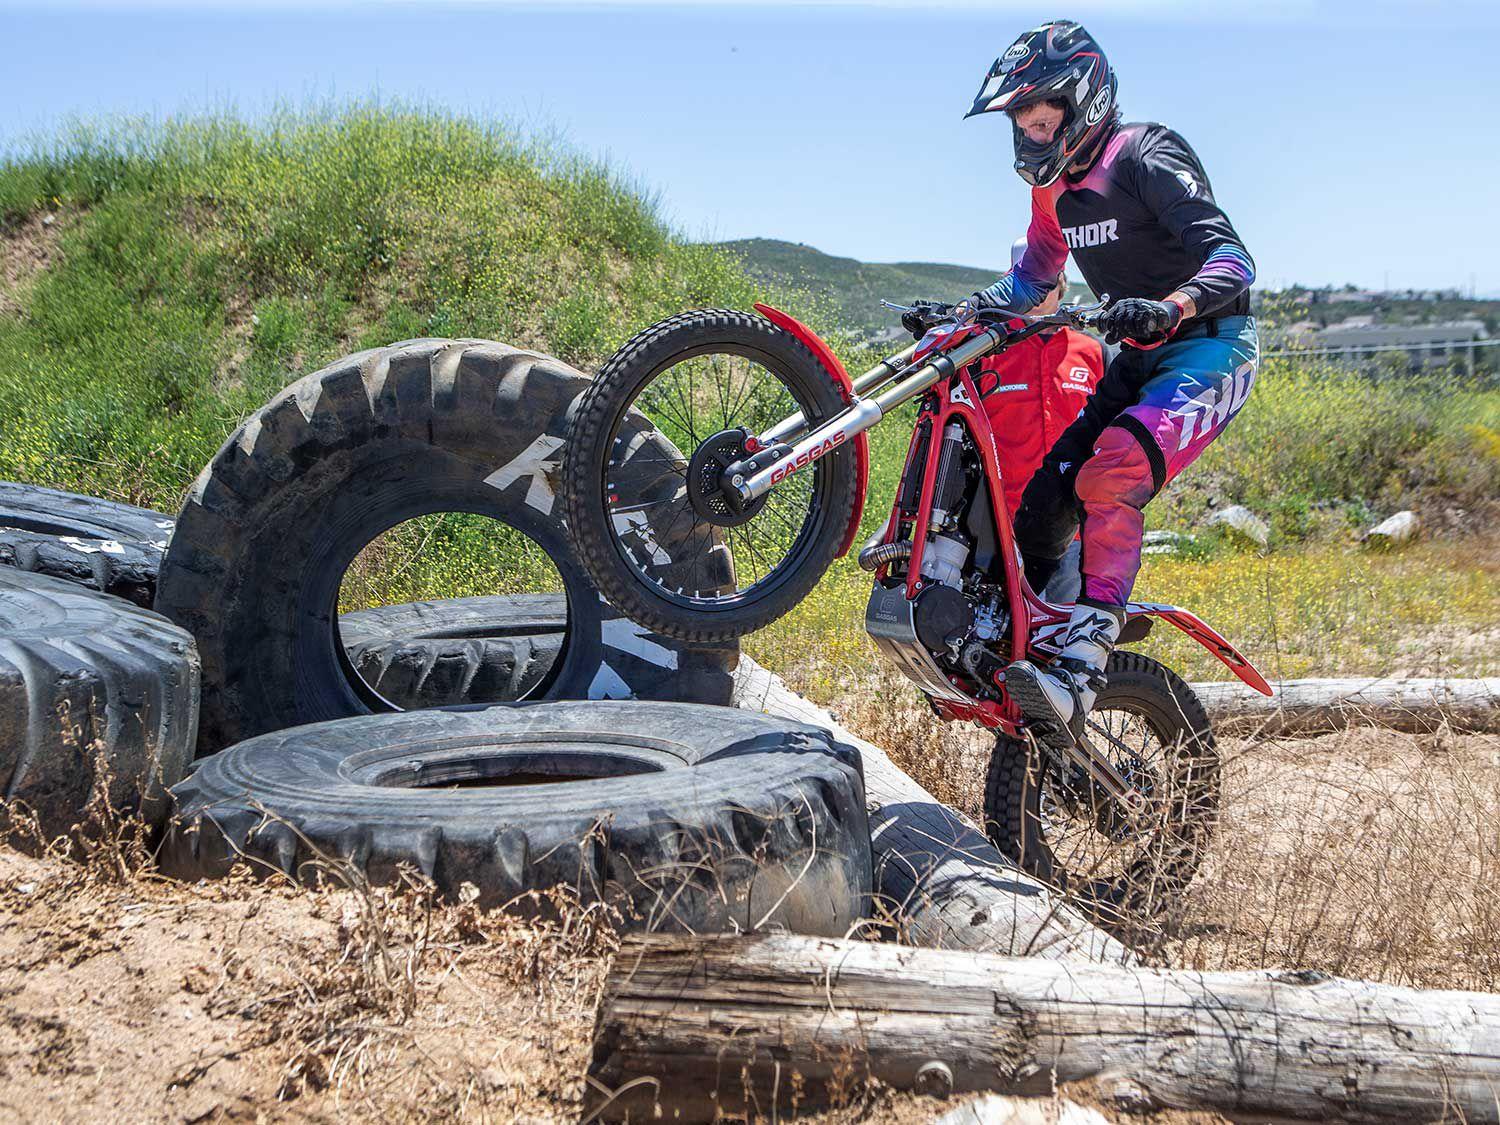 Patience and balance are the primary skills required for trials riding.